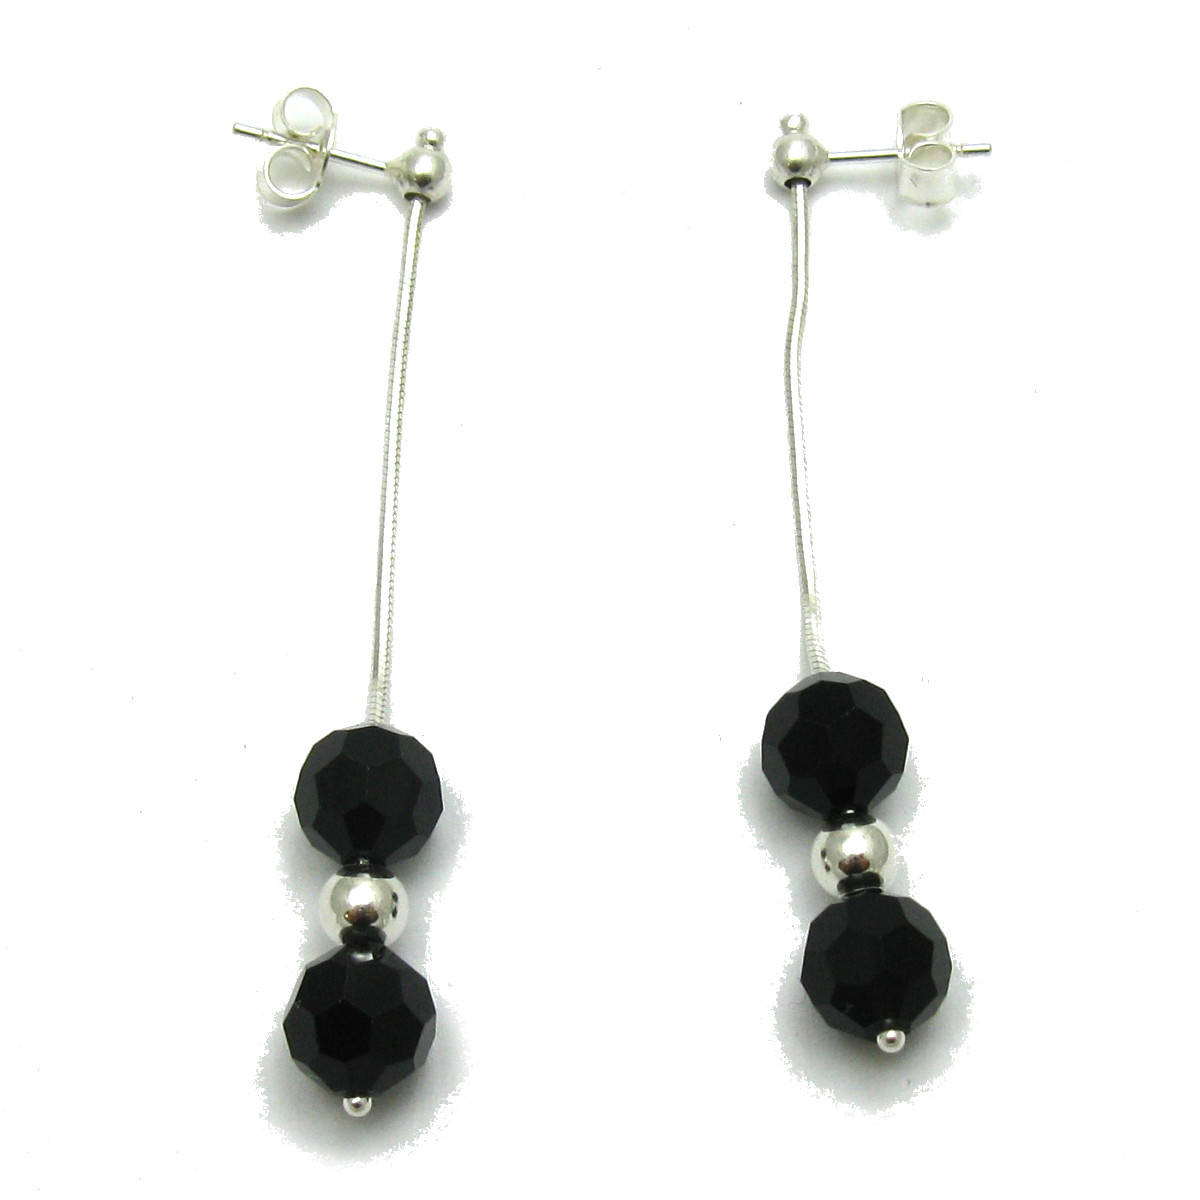 Silver earrings - E000003J